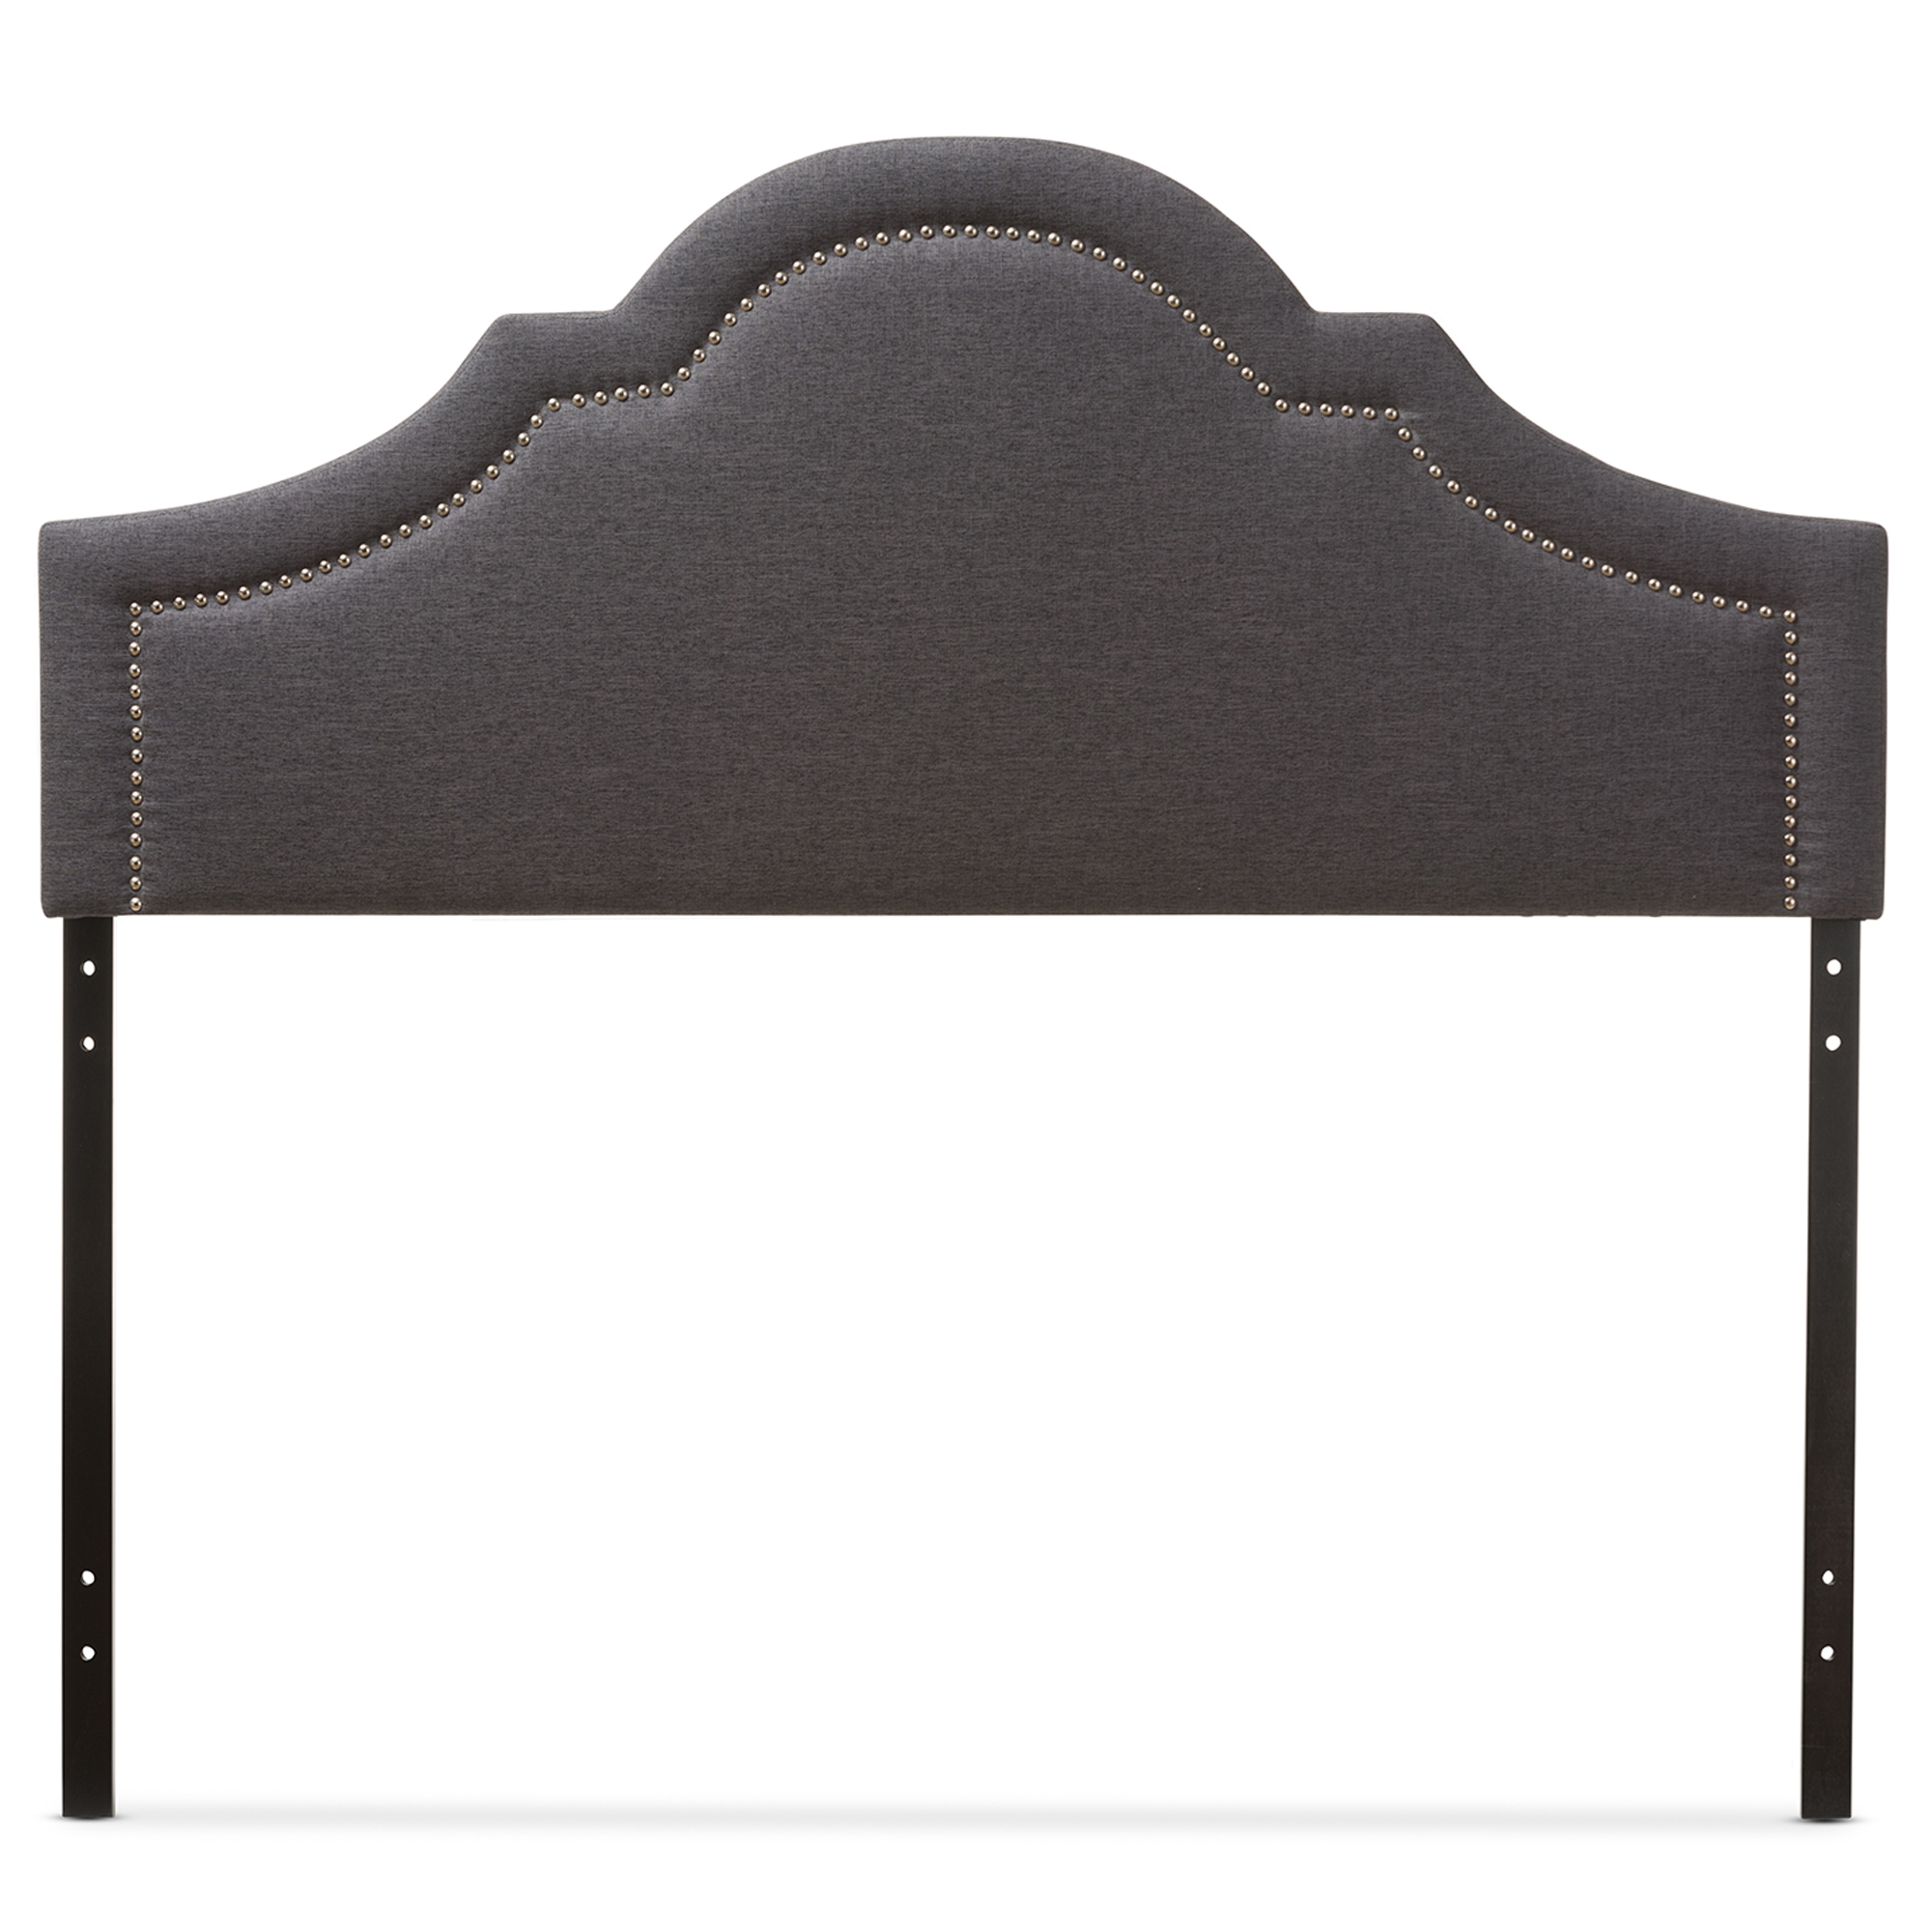 upholstered wayfair loft headboard dark panel queen lexi home concepts grey furniture pdx reviews